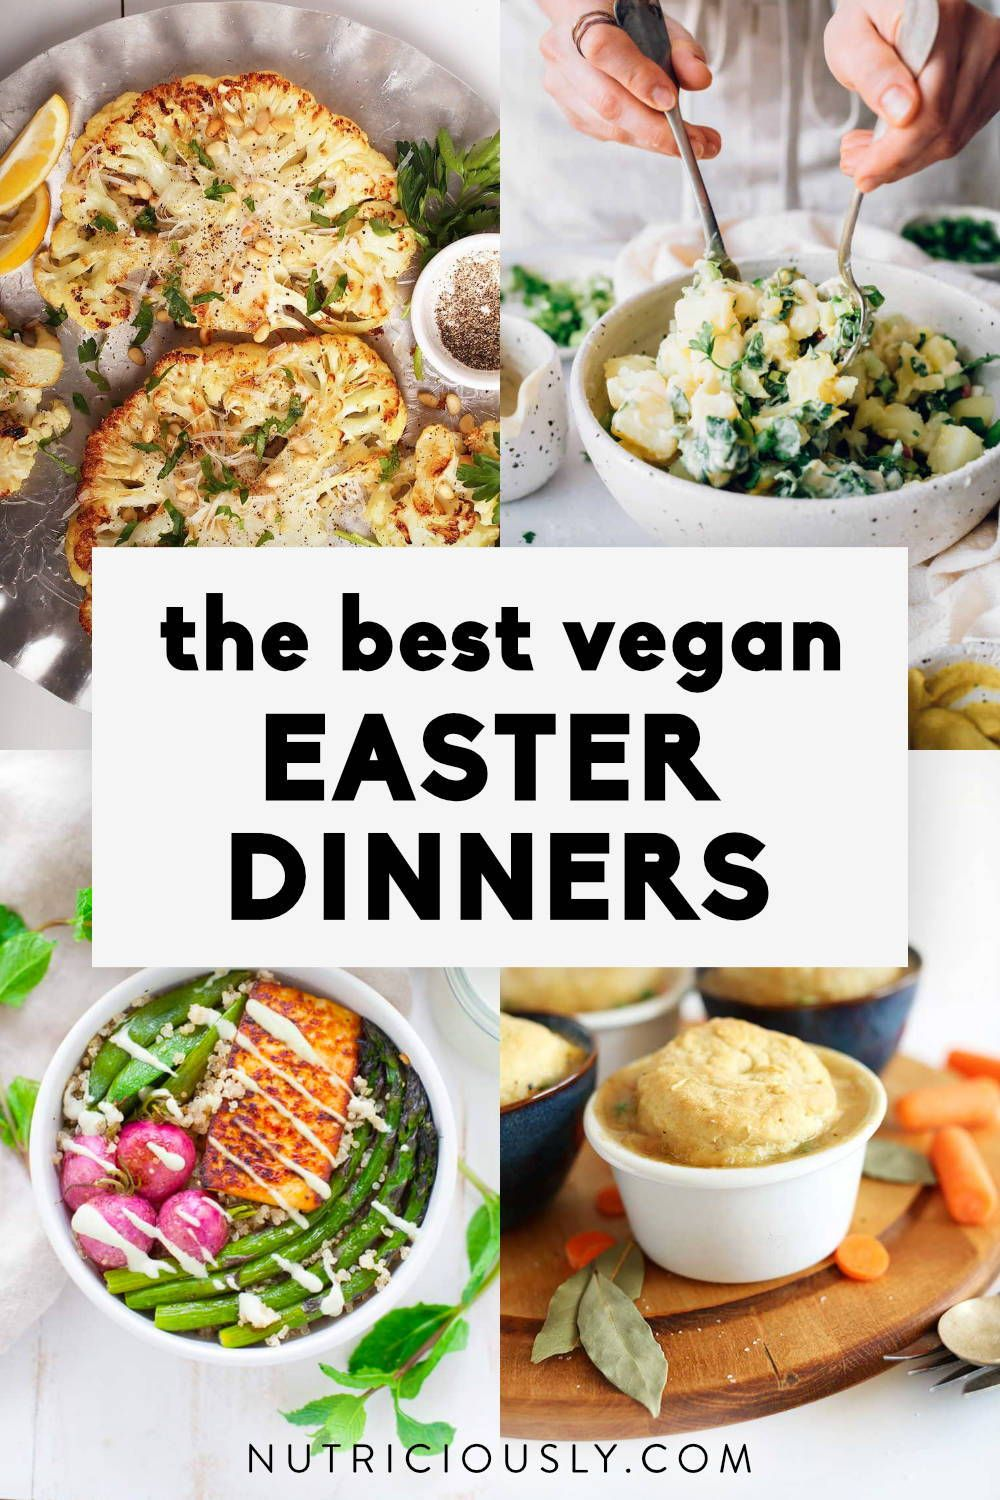 Nutriciously Healthy Plant Based Eating In 2020 Vegan Easter Dinner Vegan Easter Easter Dinner Menus